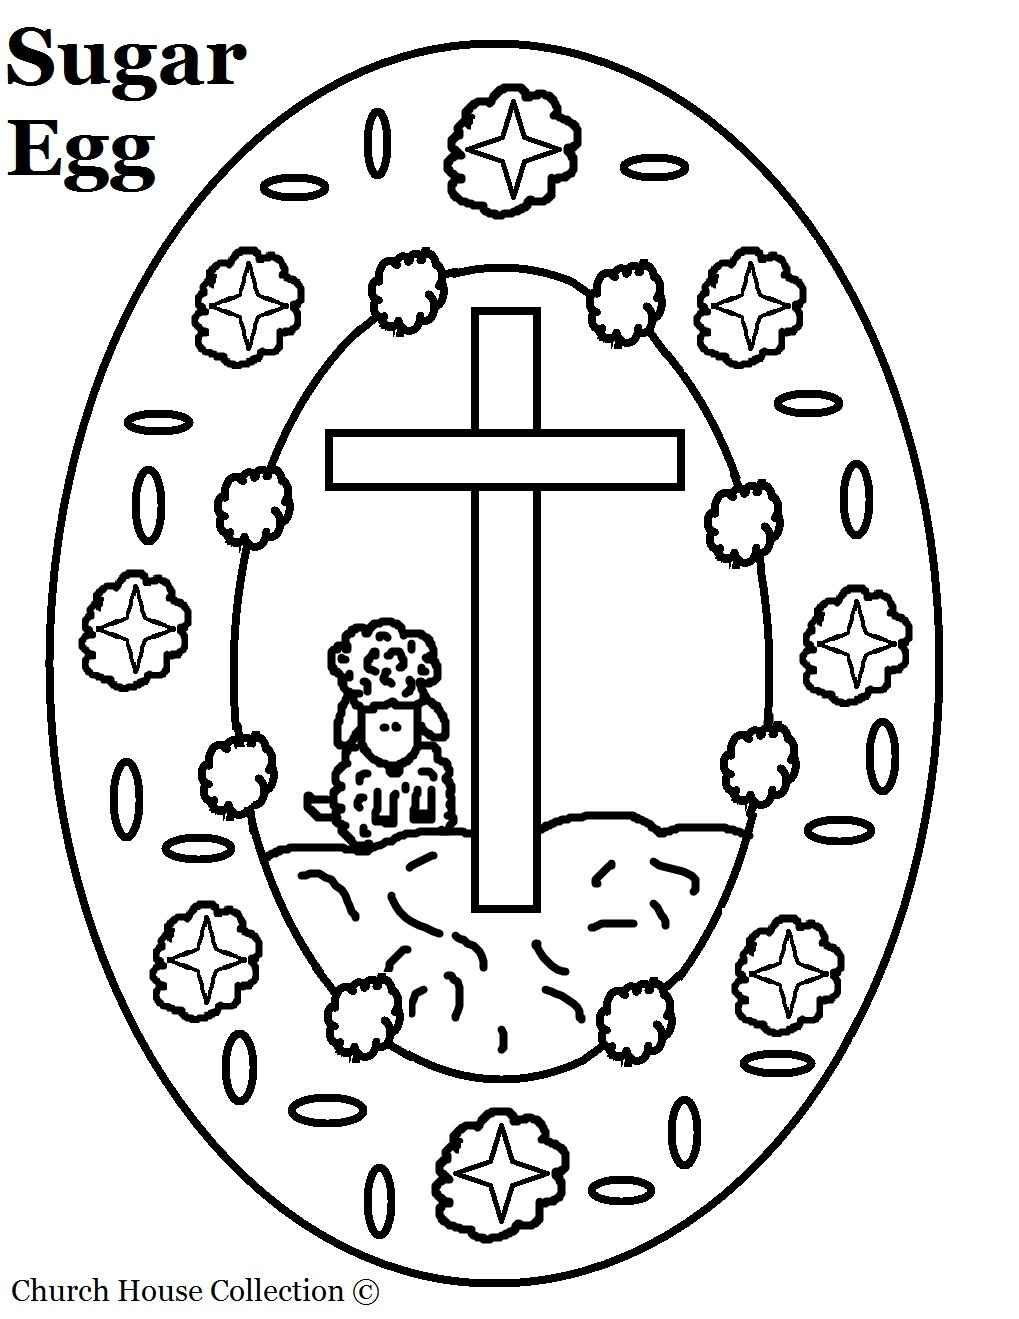 1019x1319 Christian Easter Egg Coloring Pages Egg Coloring Page Sugar Egg